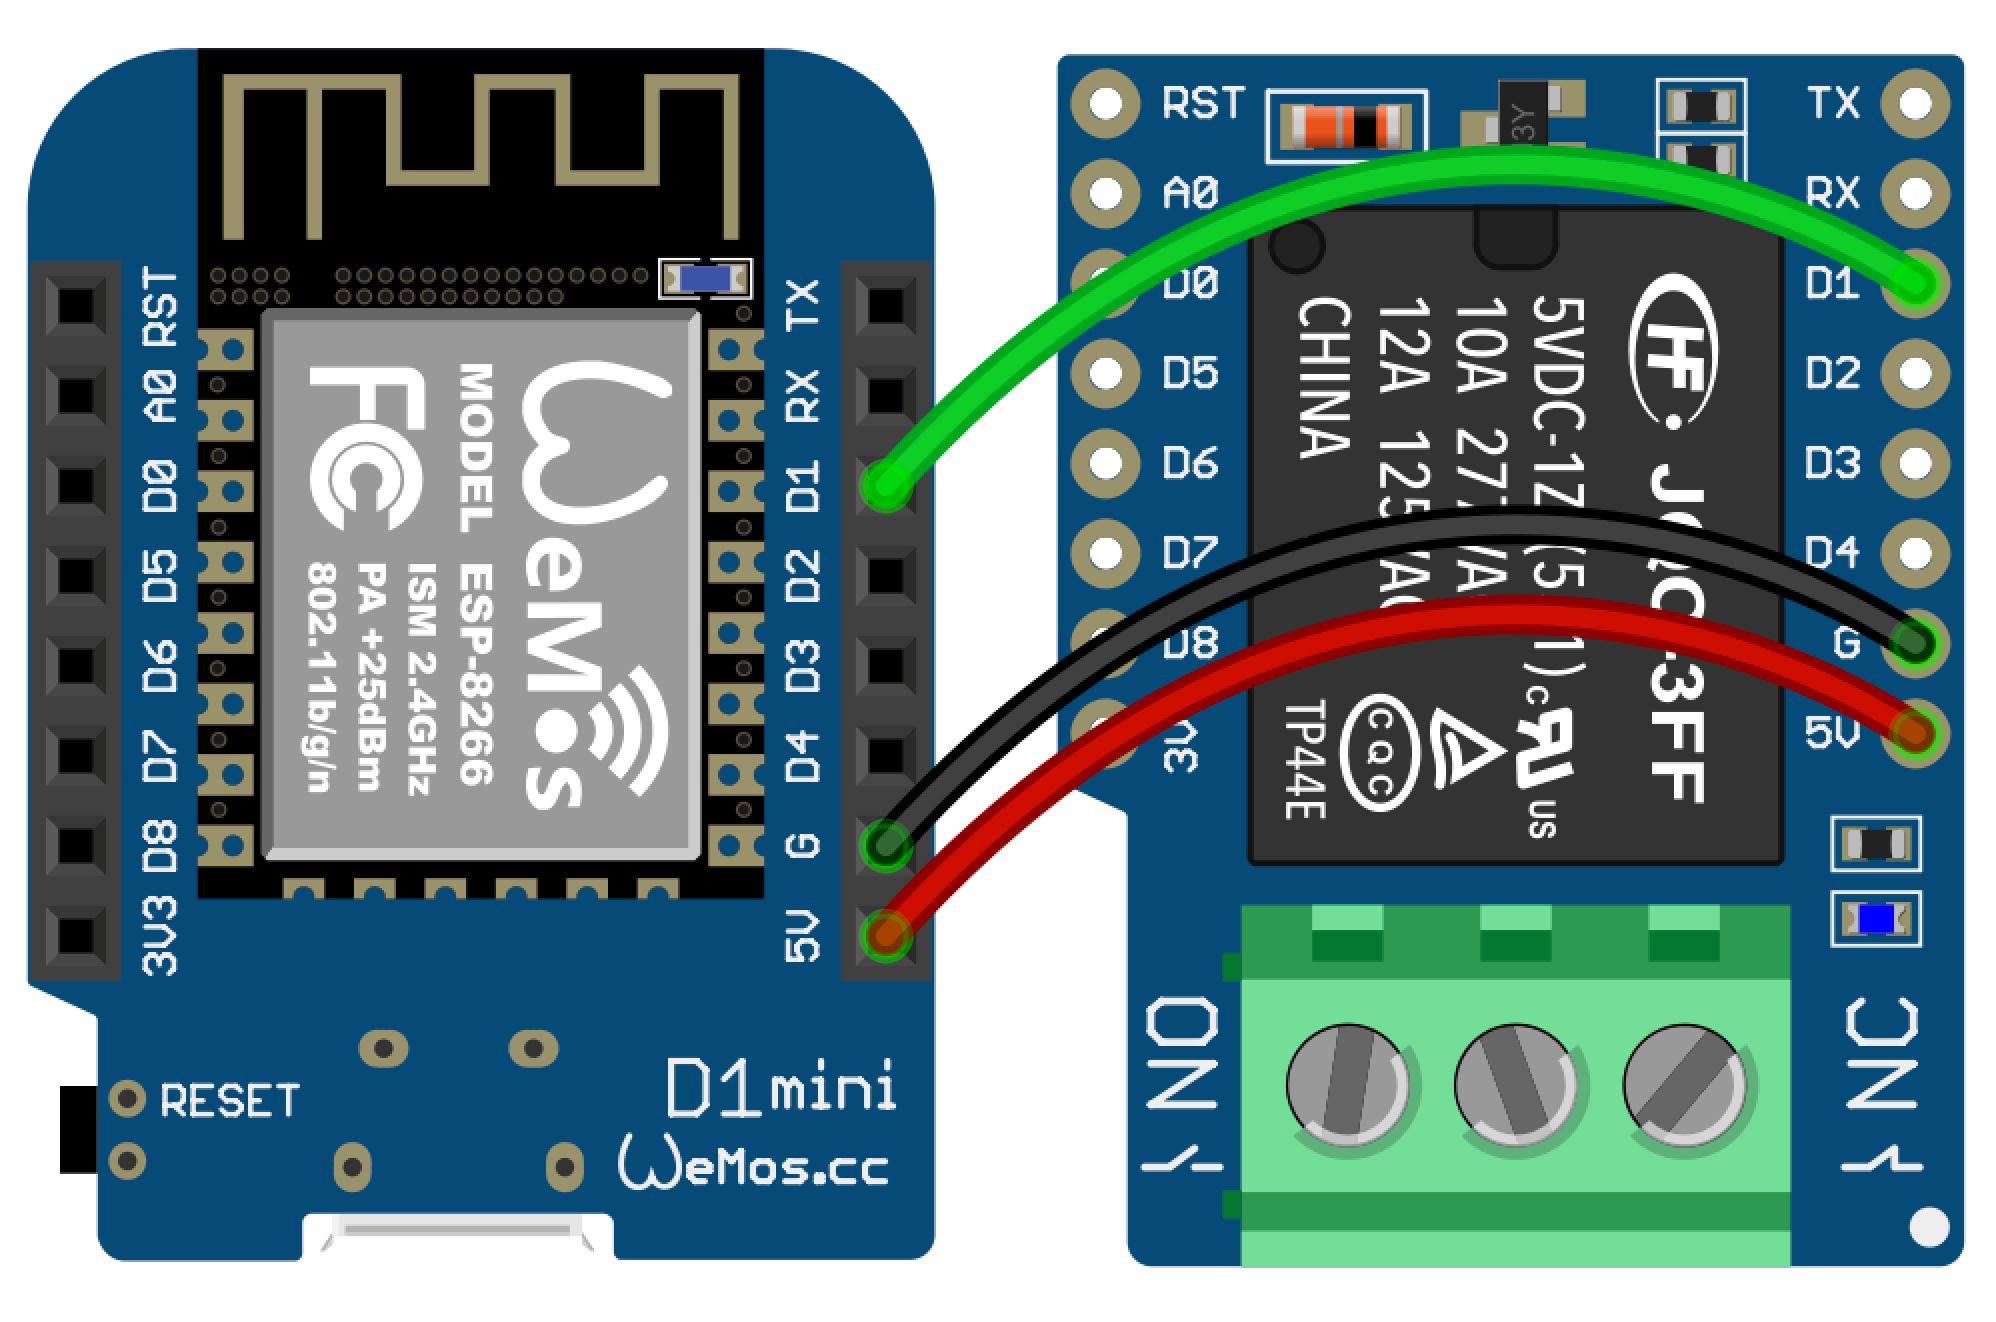 Pin Uivatele Personal Na Nstnce Arduino V Roce 2018 Pinterest Toggle On Off Switch Electronicslab A Wemos D1 Mini Esp8266 Development Board Running Micropython Configured As An Access Point With